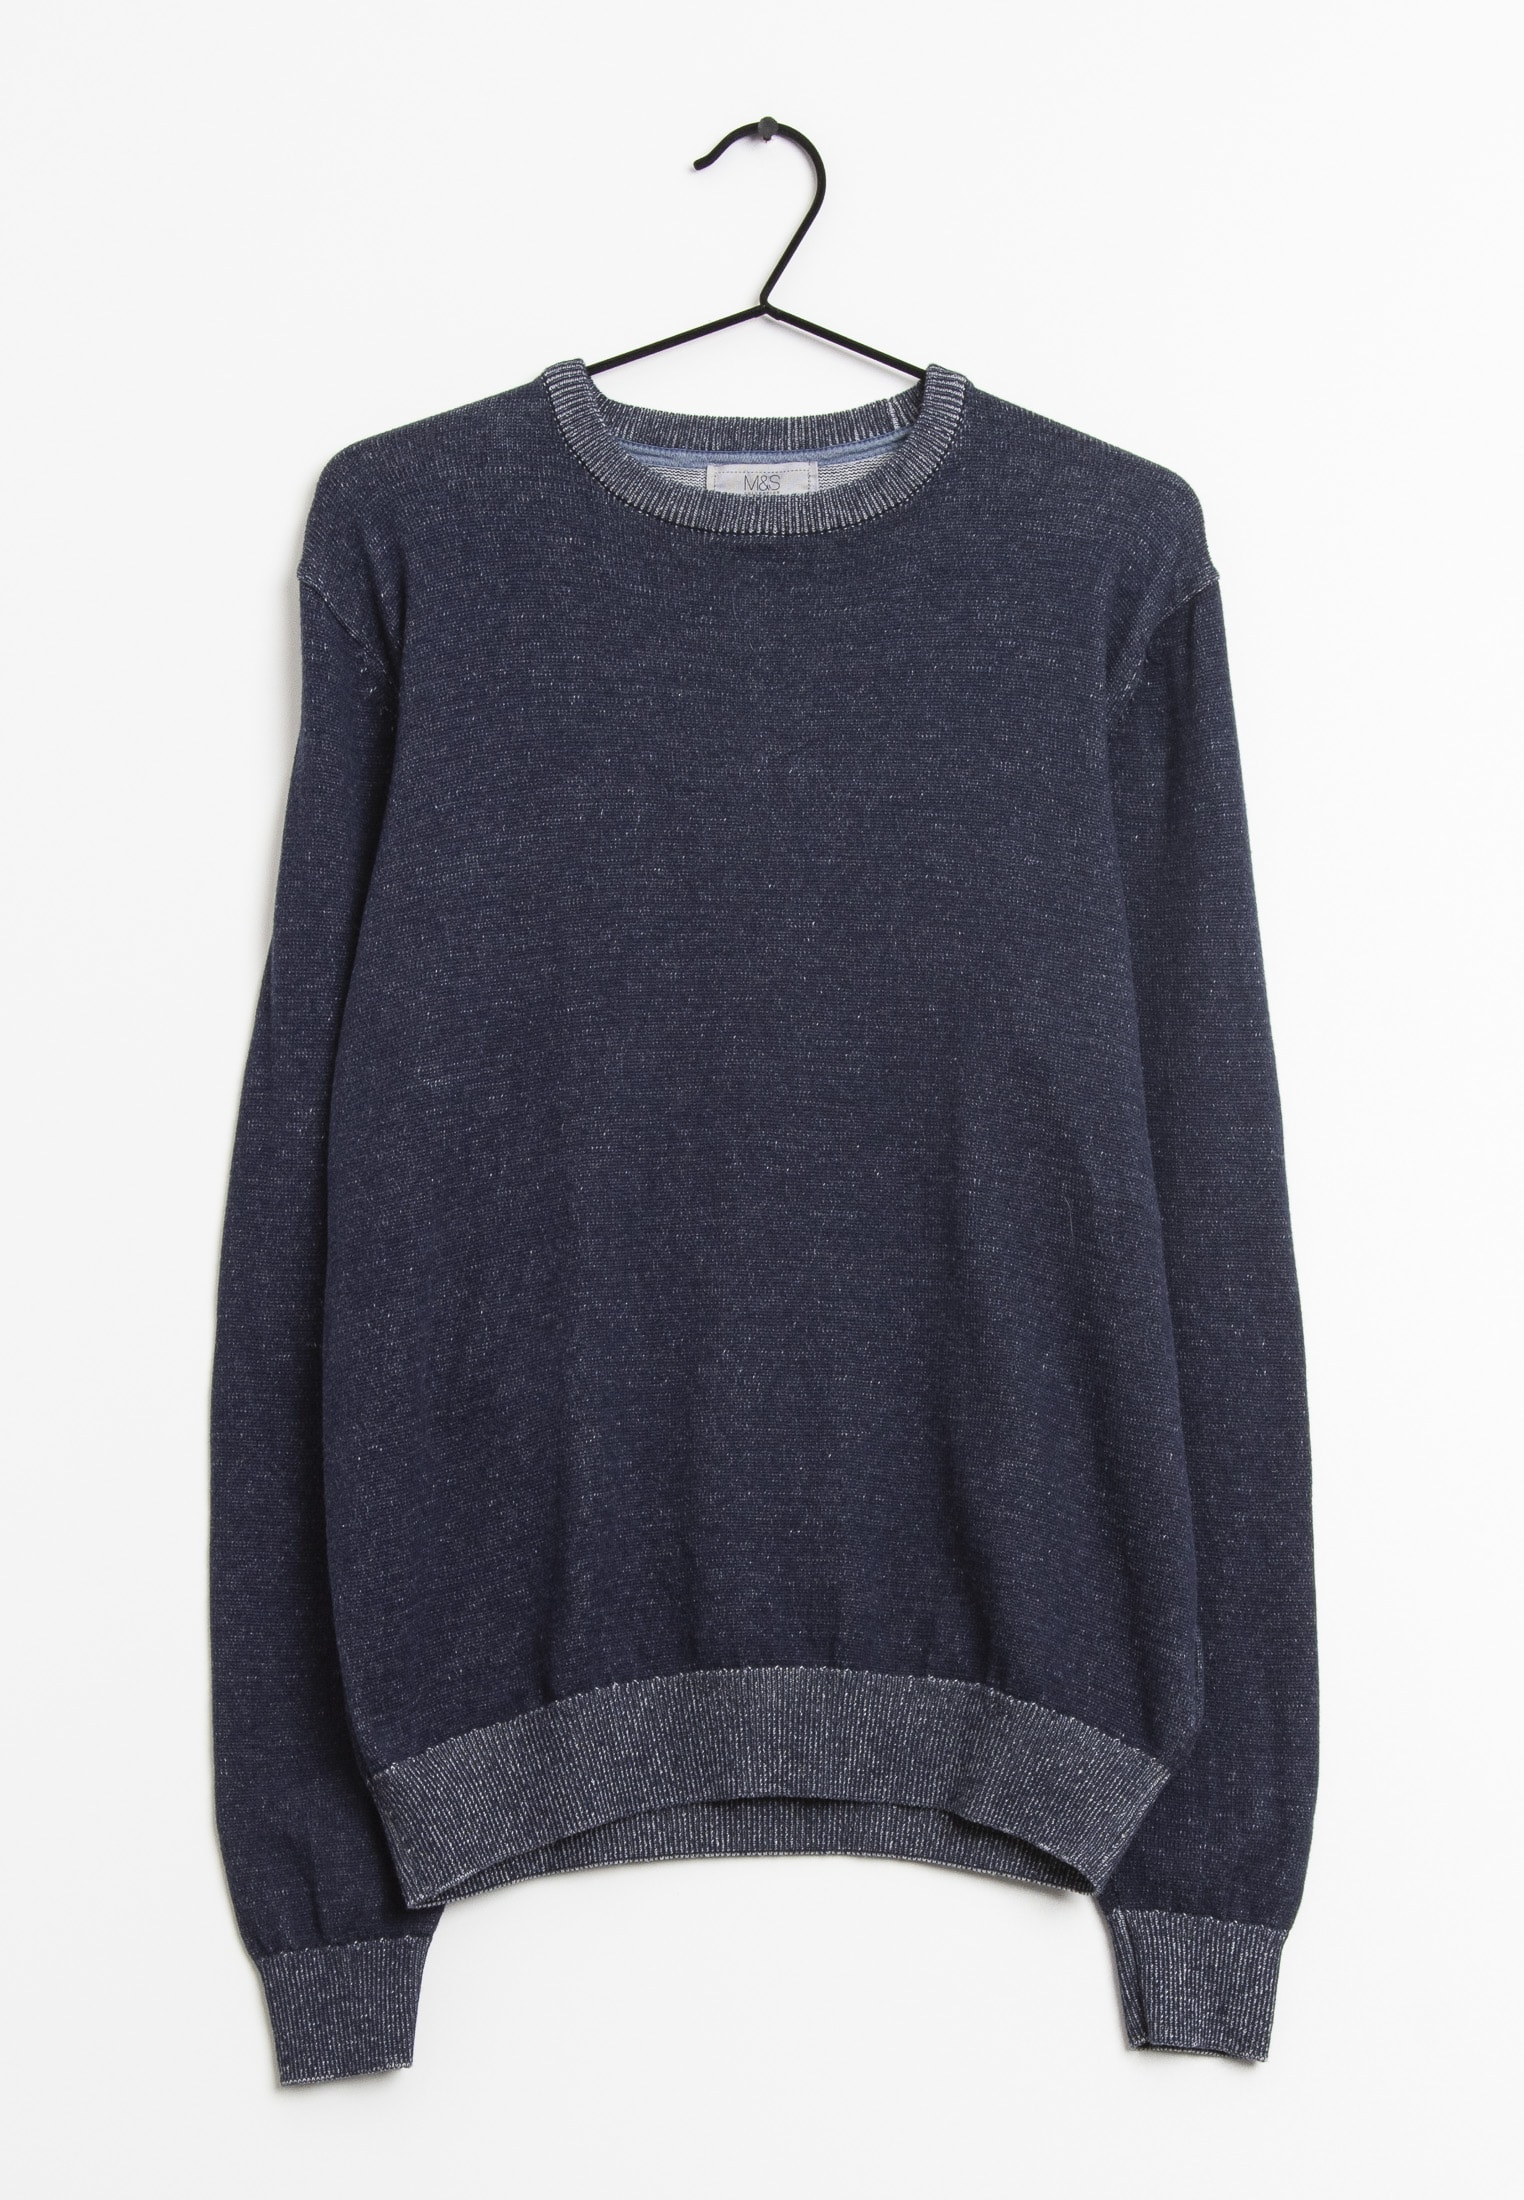 Marks & Spencer London Strickpullover Blau Gr.M